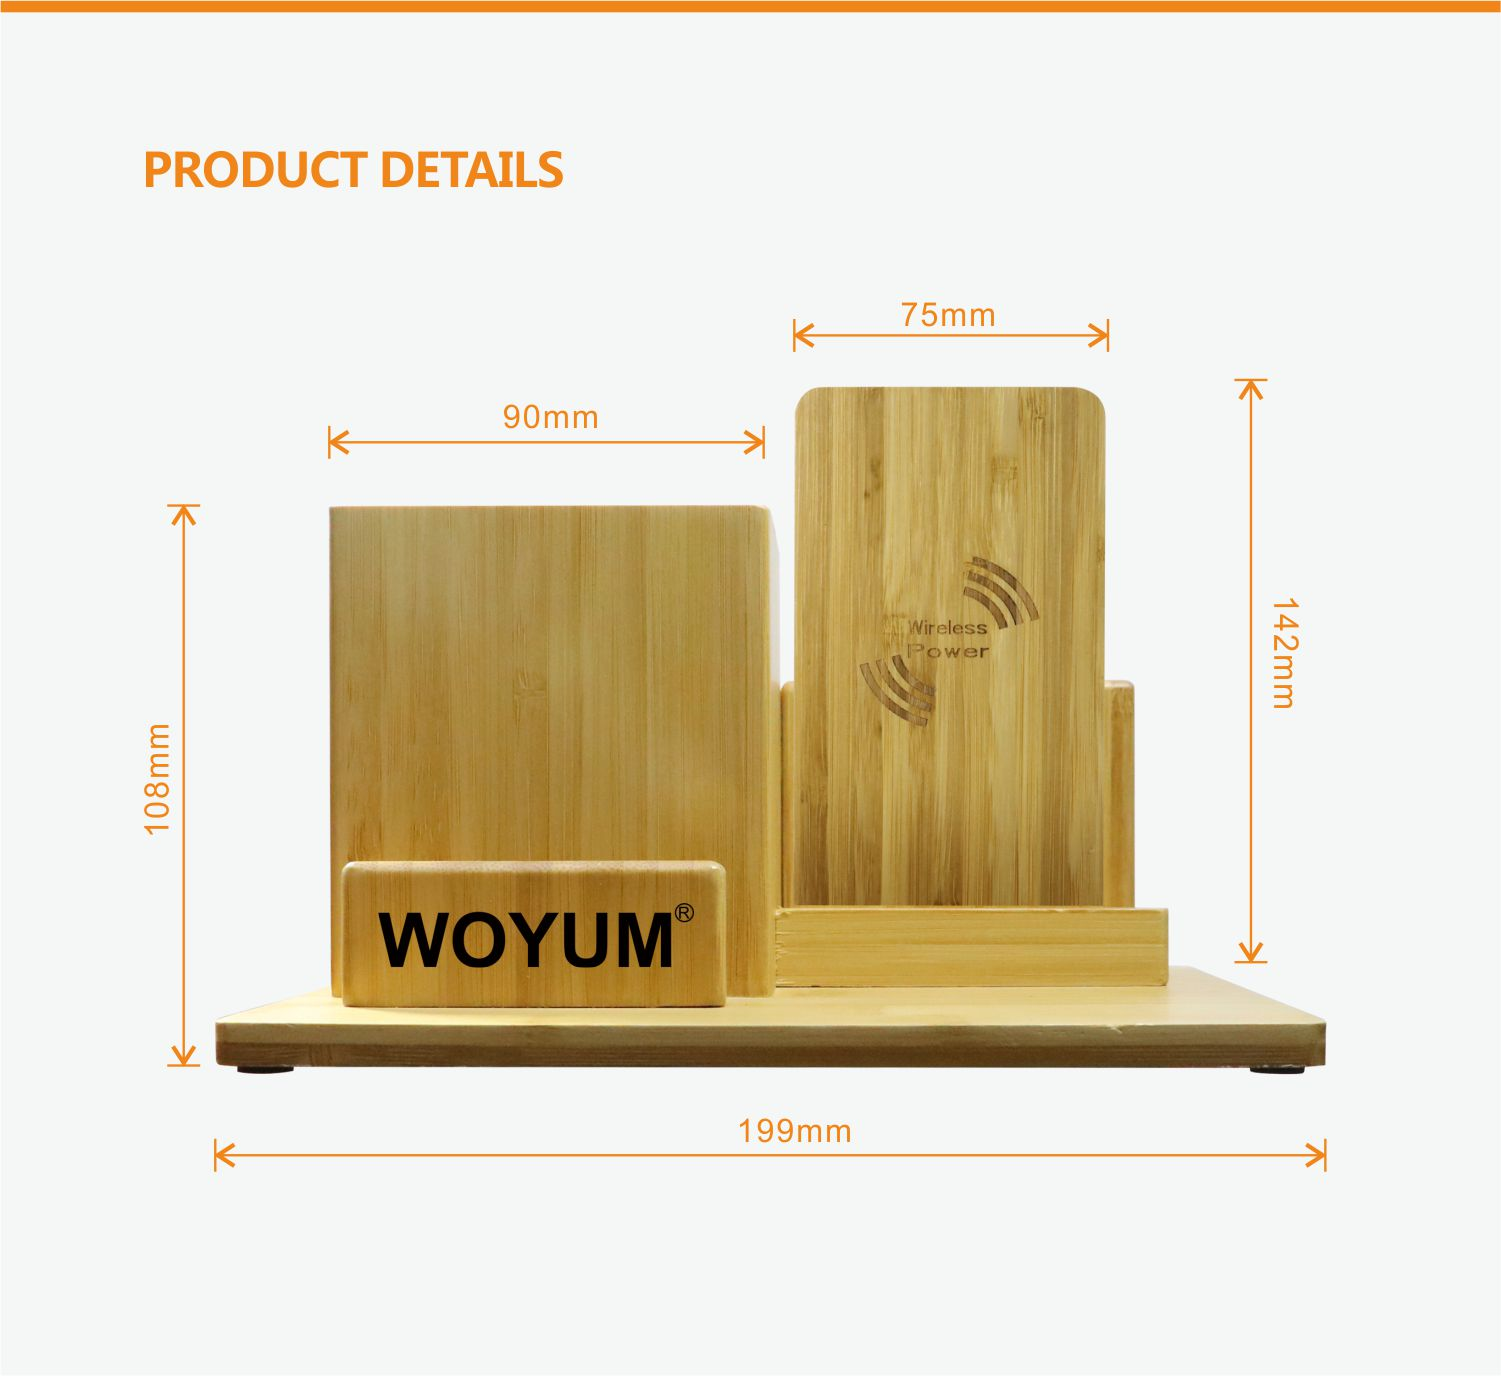 video-bamboo wood qi wireless charger wood power bank with Pen container-Woyum -img-9